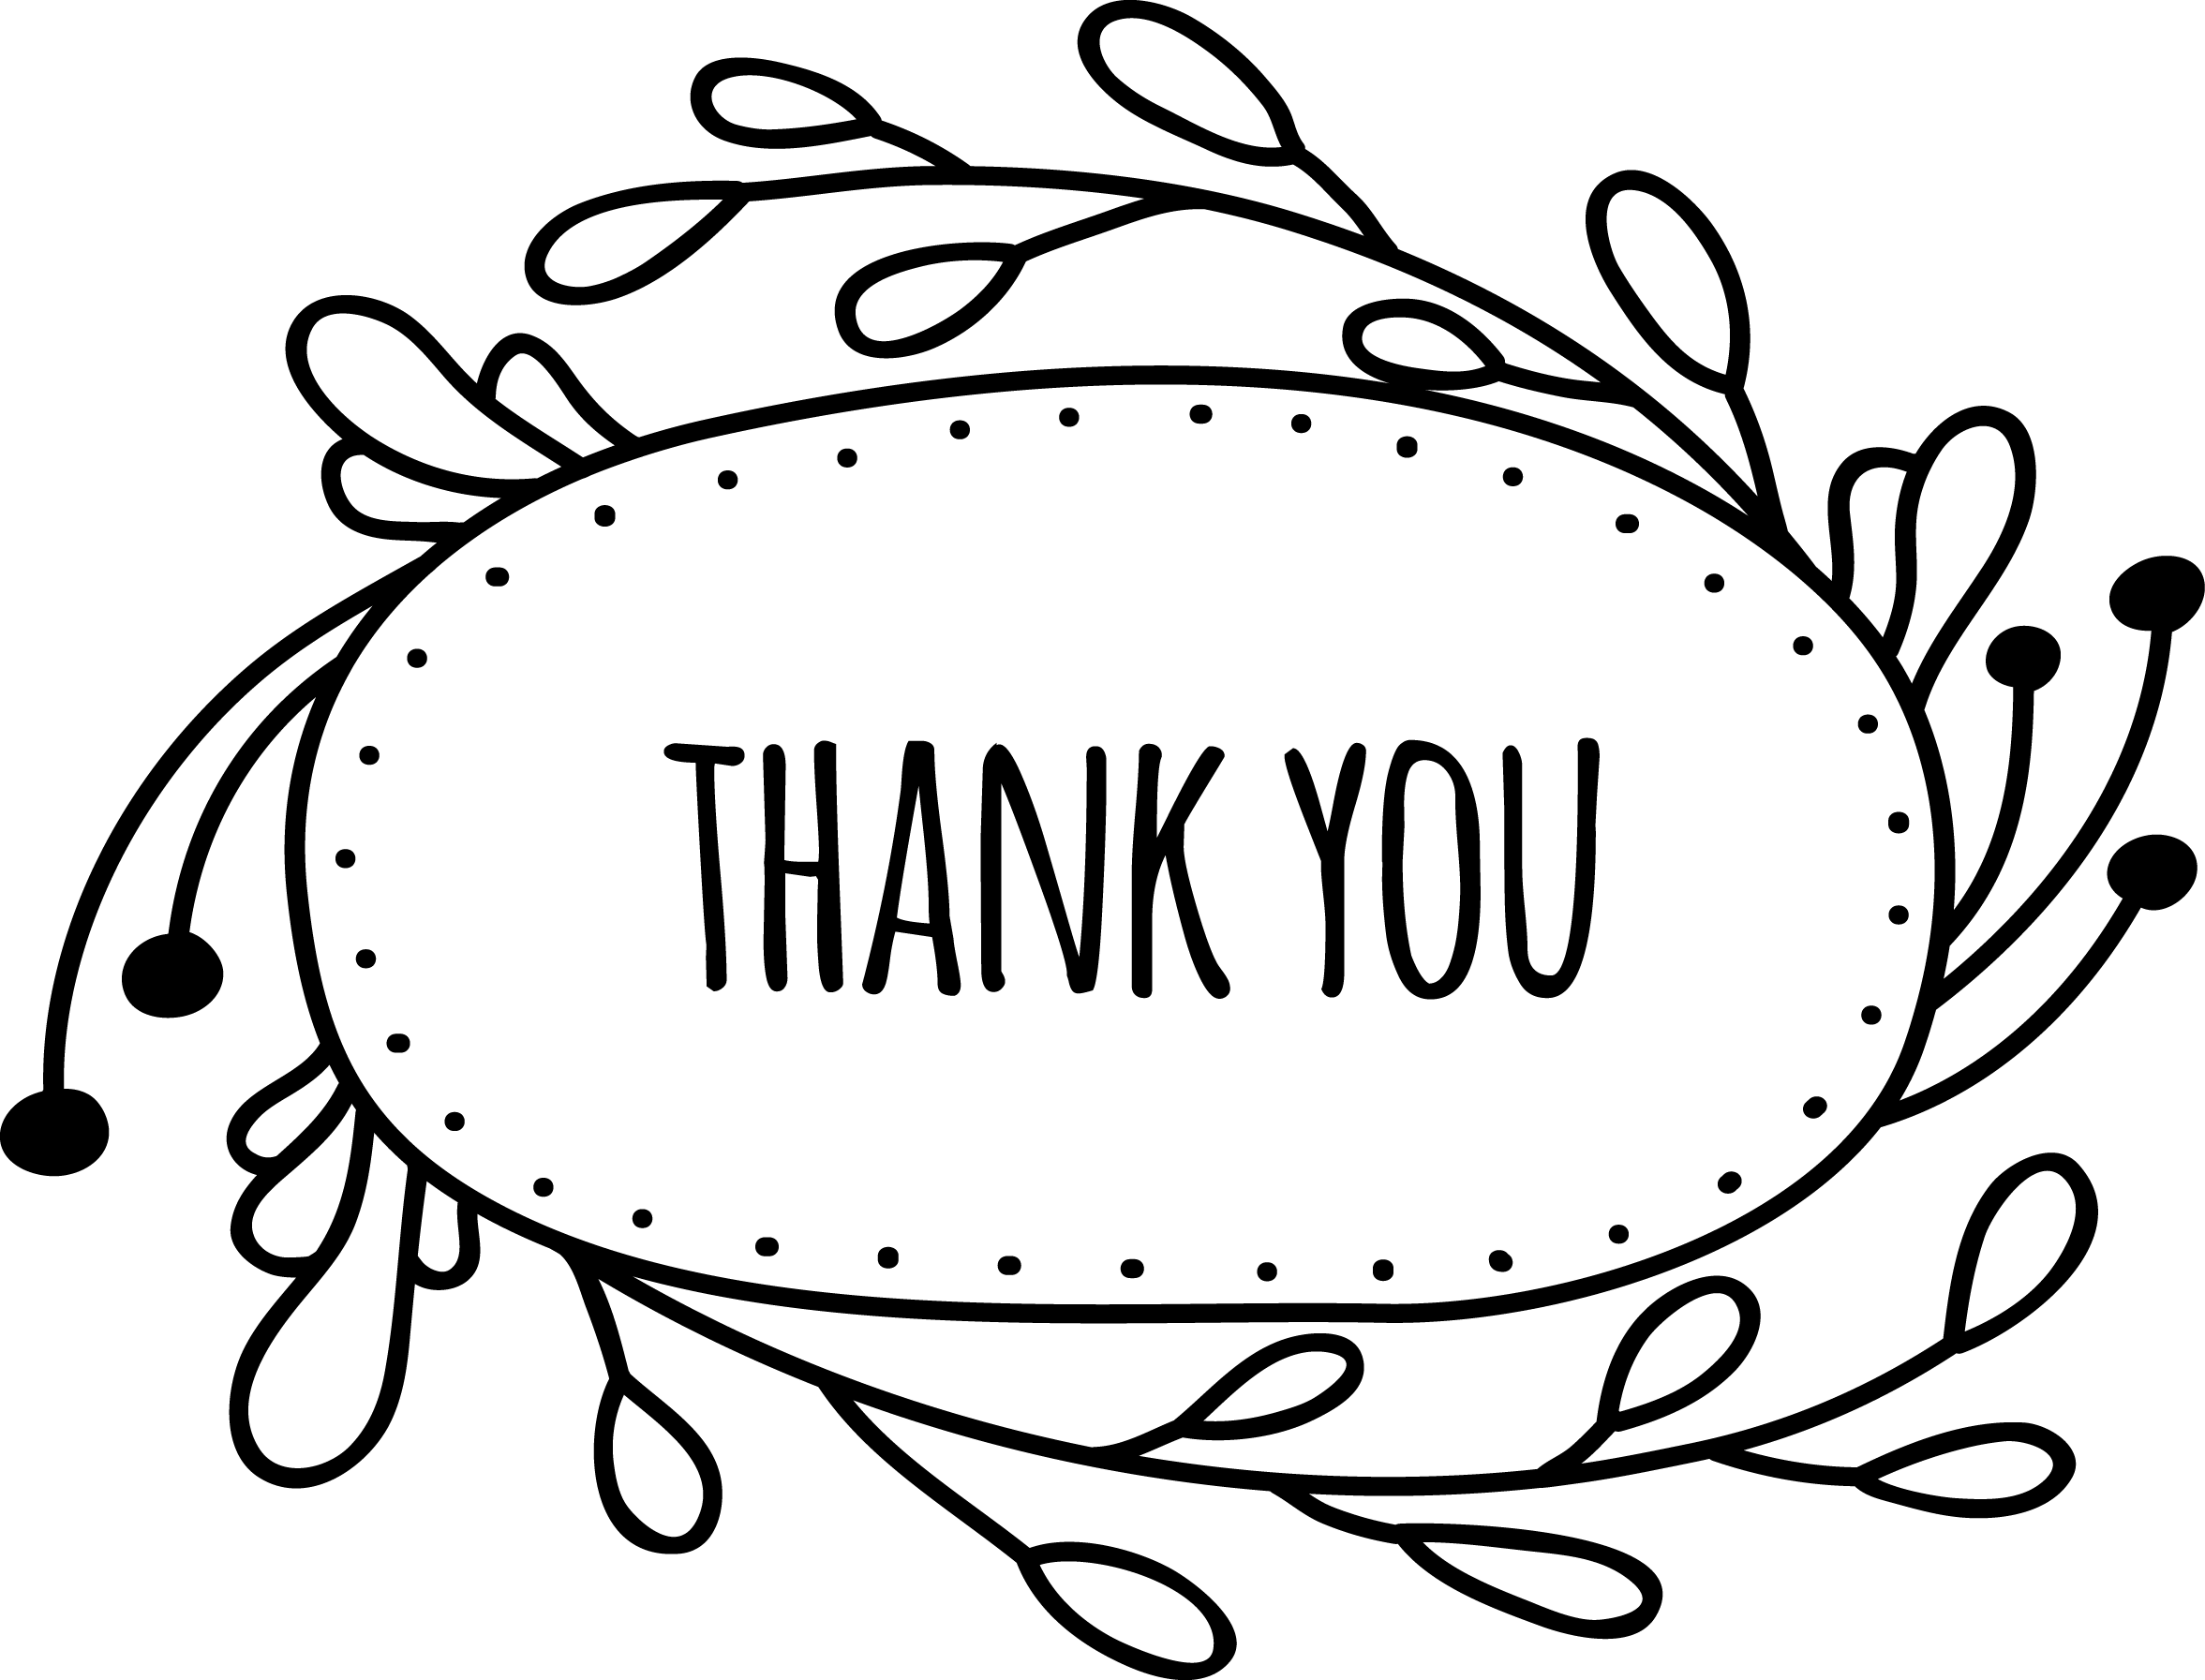 Thank you spring clipart in black and white picture freeuse Thank You Png | Free download best Thank You Png on ... picture freeuse